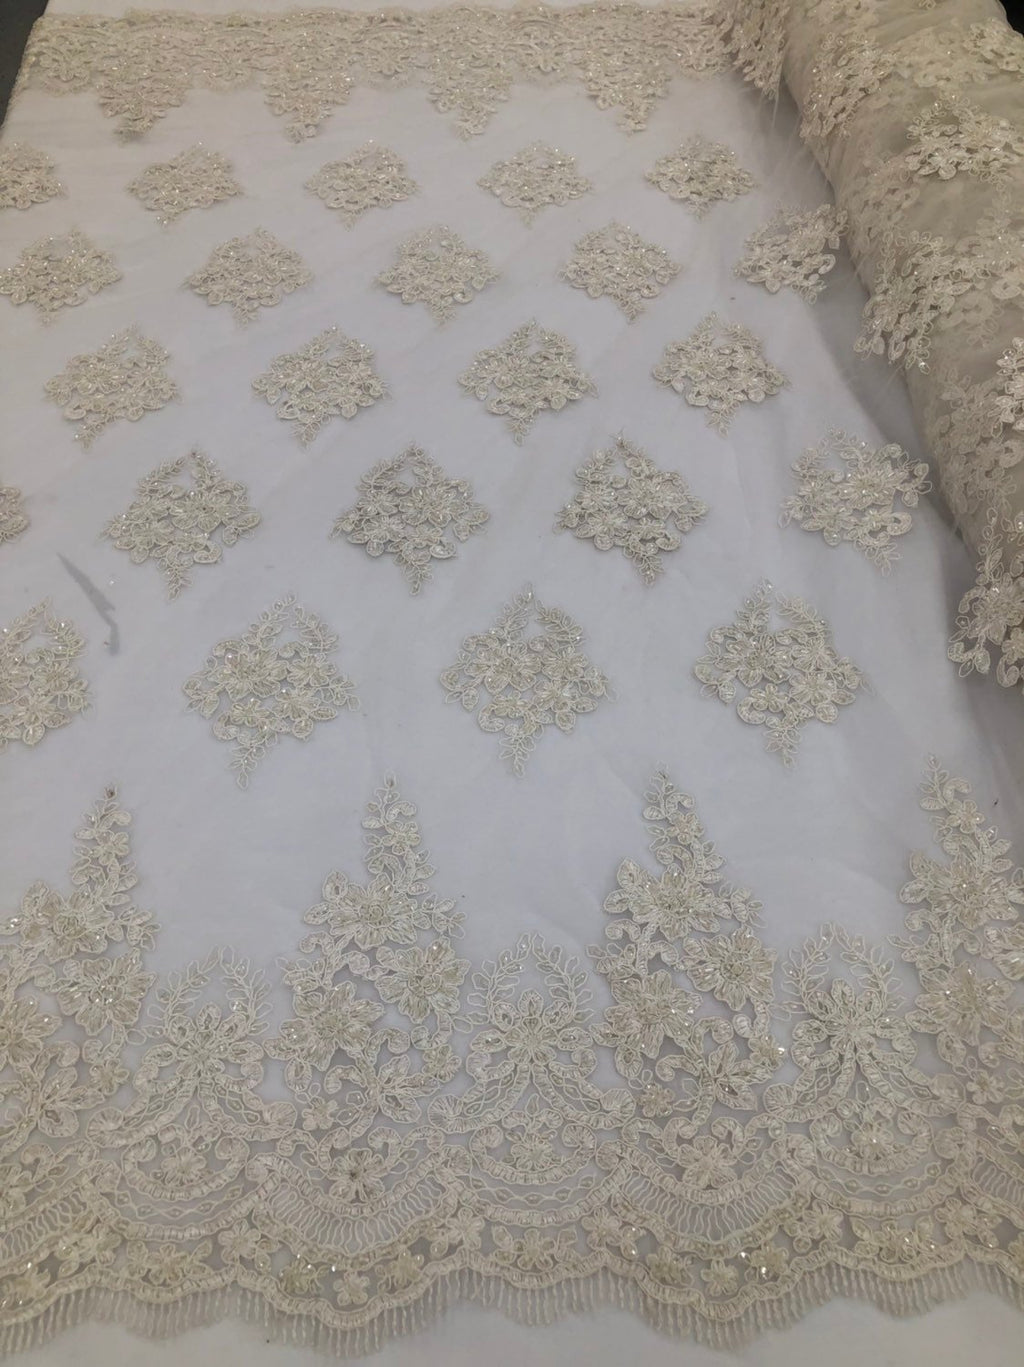 Ivory Beaded Fabric, Lace Fabric By The Yard - Embroider Beaded On A Mesh For Bridal Veil Flower-Floral Mesh Dress Top Wedding Decor